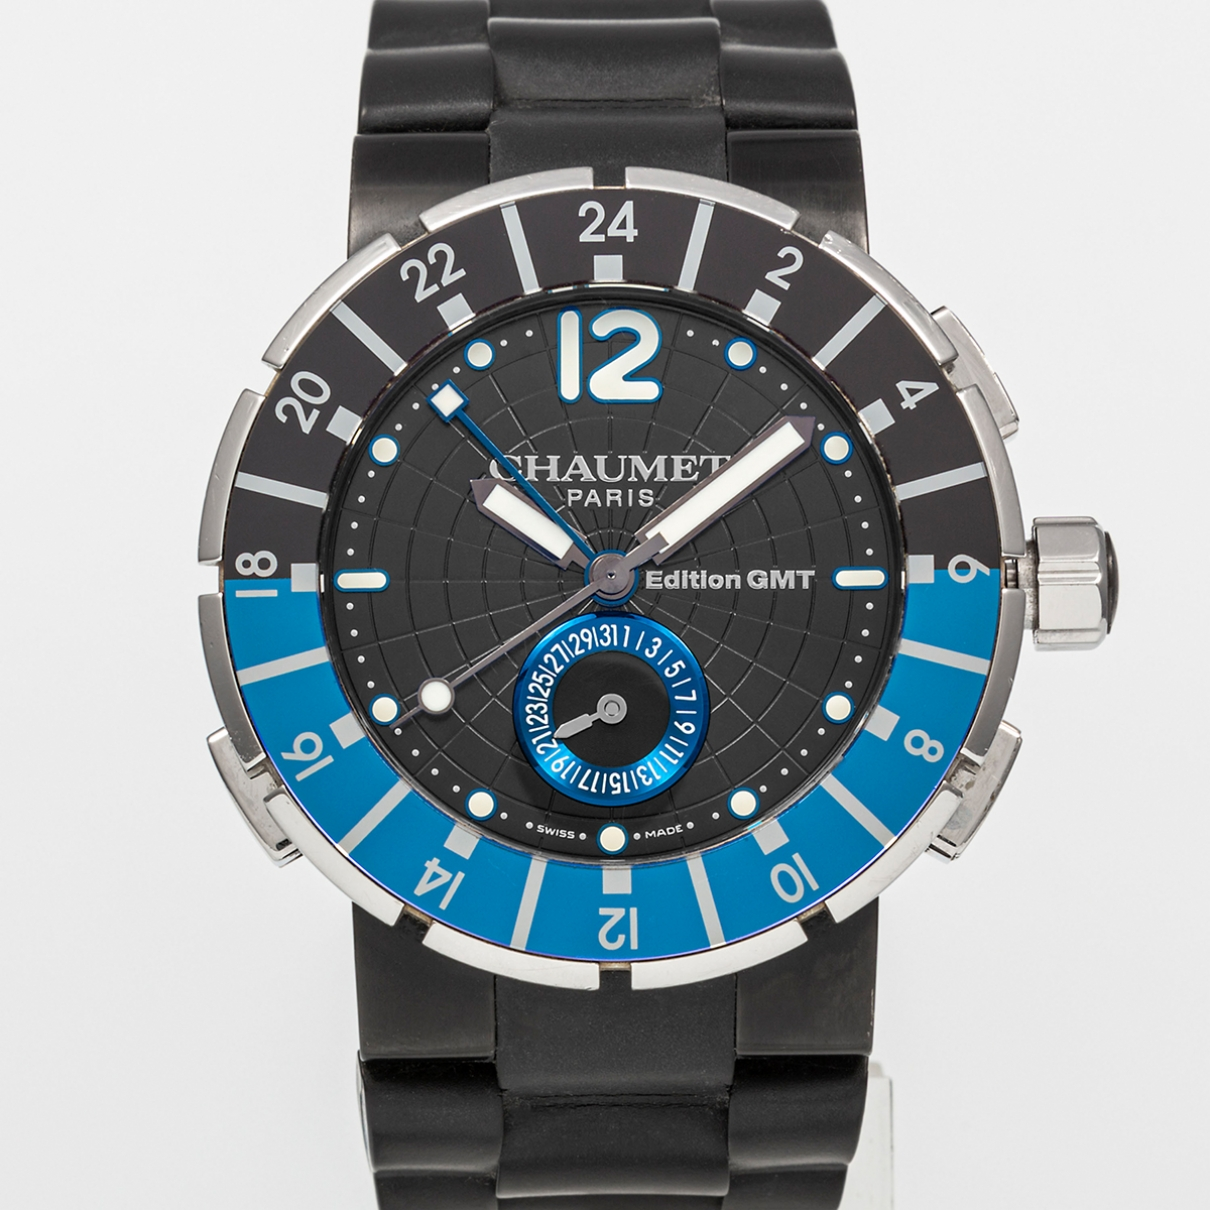 Relojes Class One  Chaumet